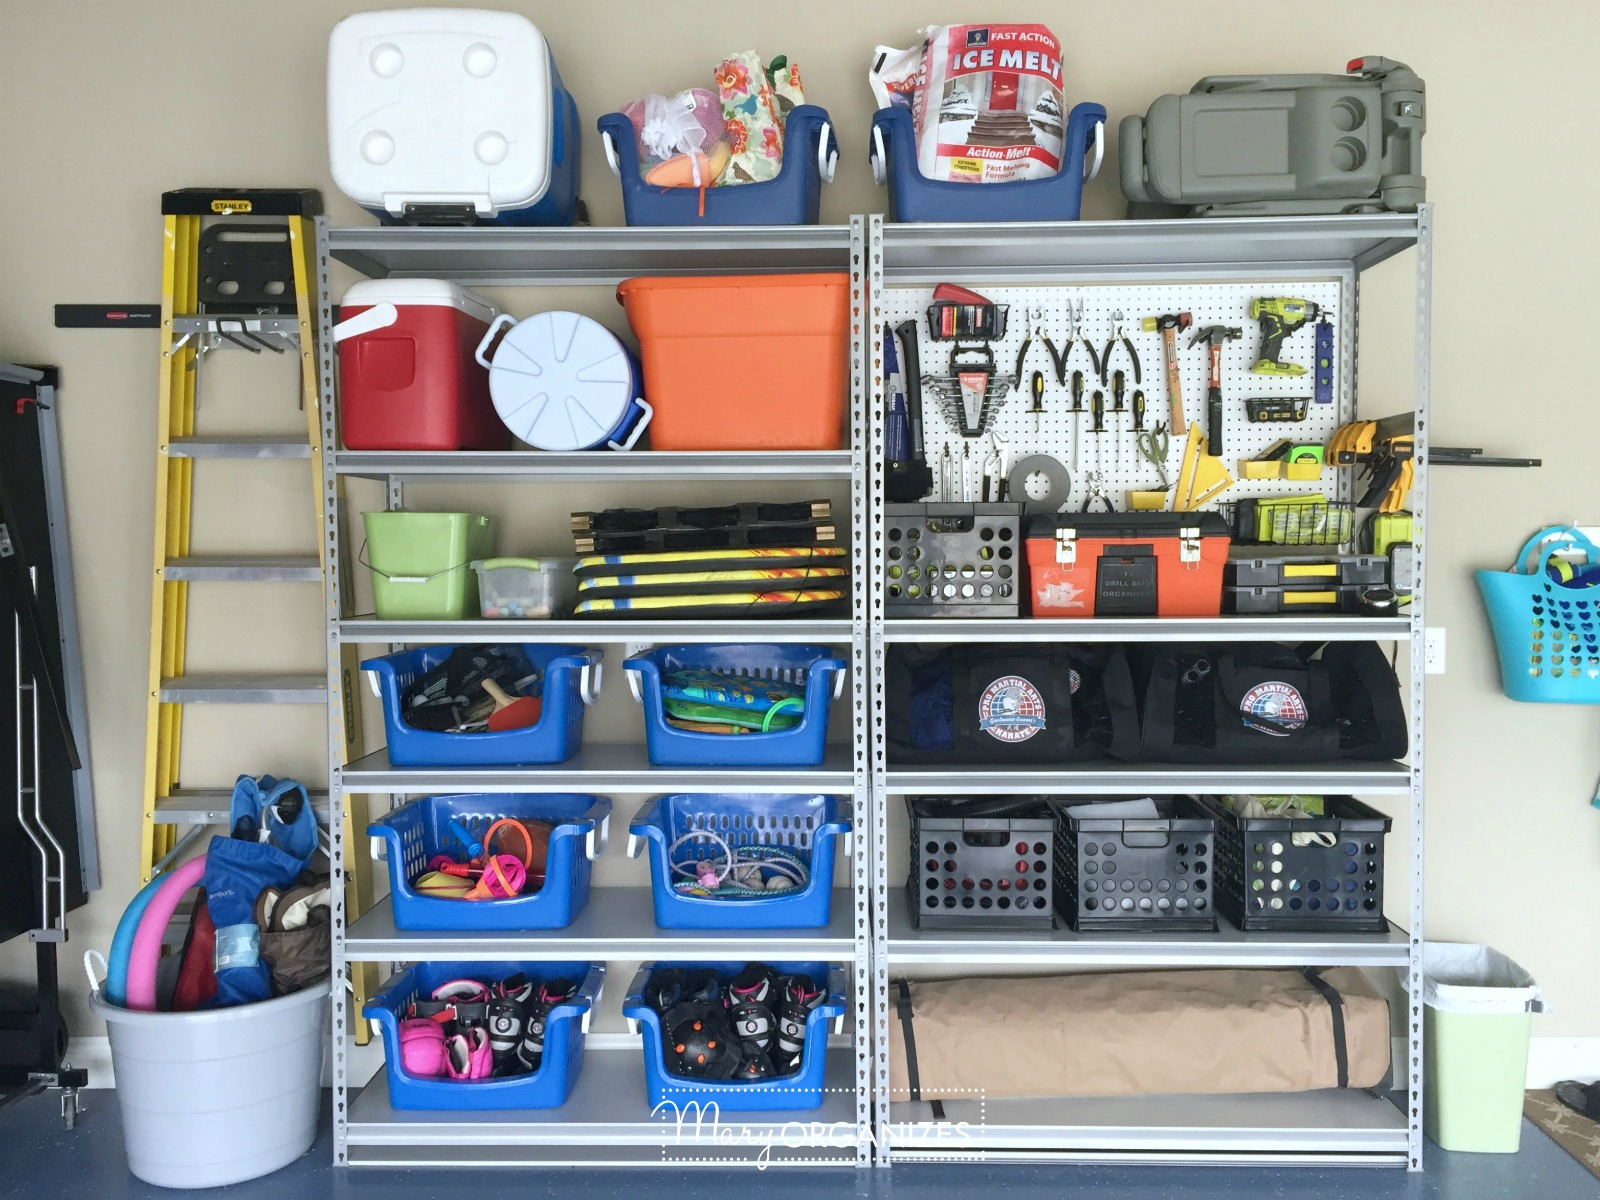 Pegboard Hack and Organizing Garage Shelves 7. Pegboard Hack   Organizing Garage Shelves   creatingmaryshome com